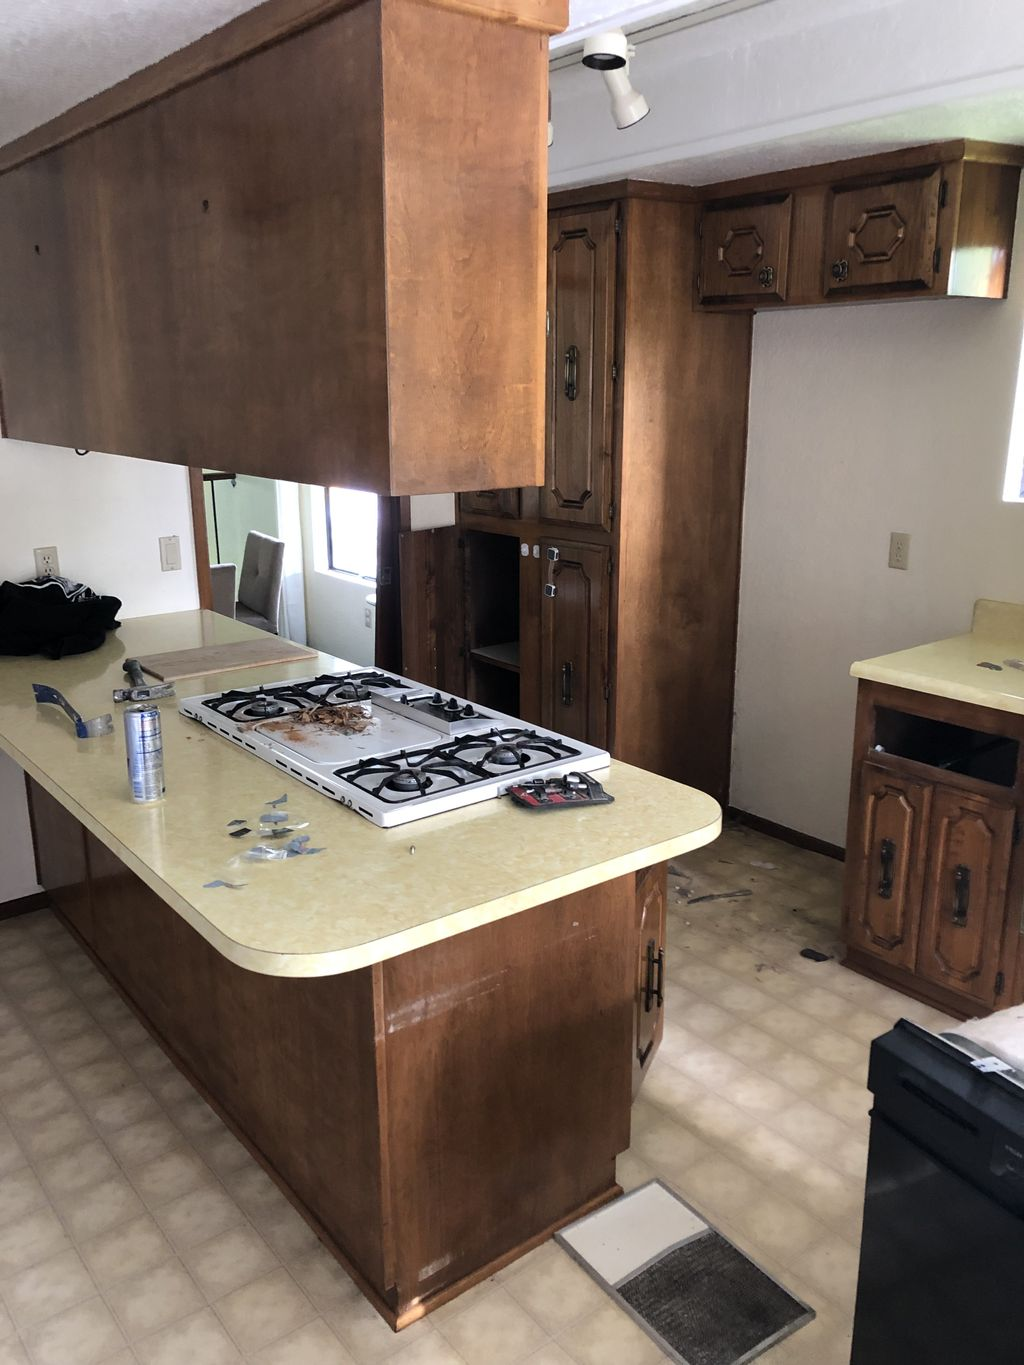 Kitchen remodel and flooring throughout